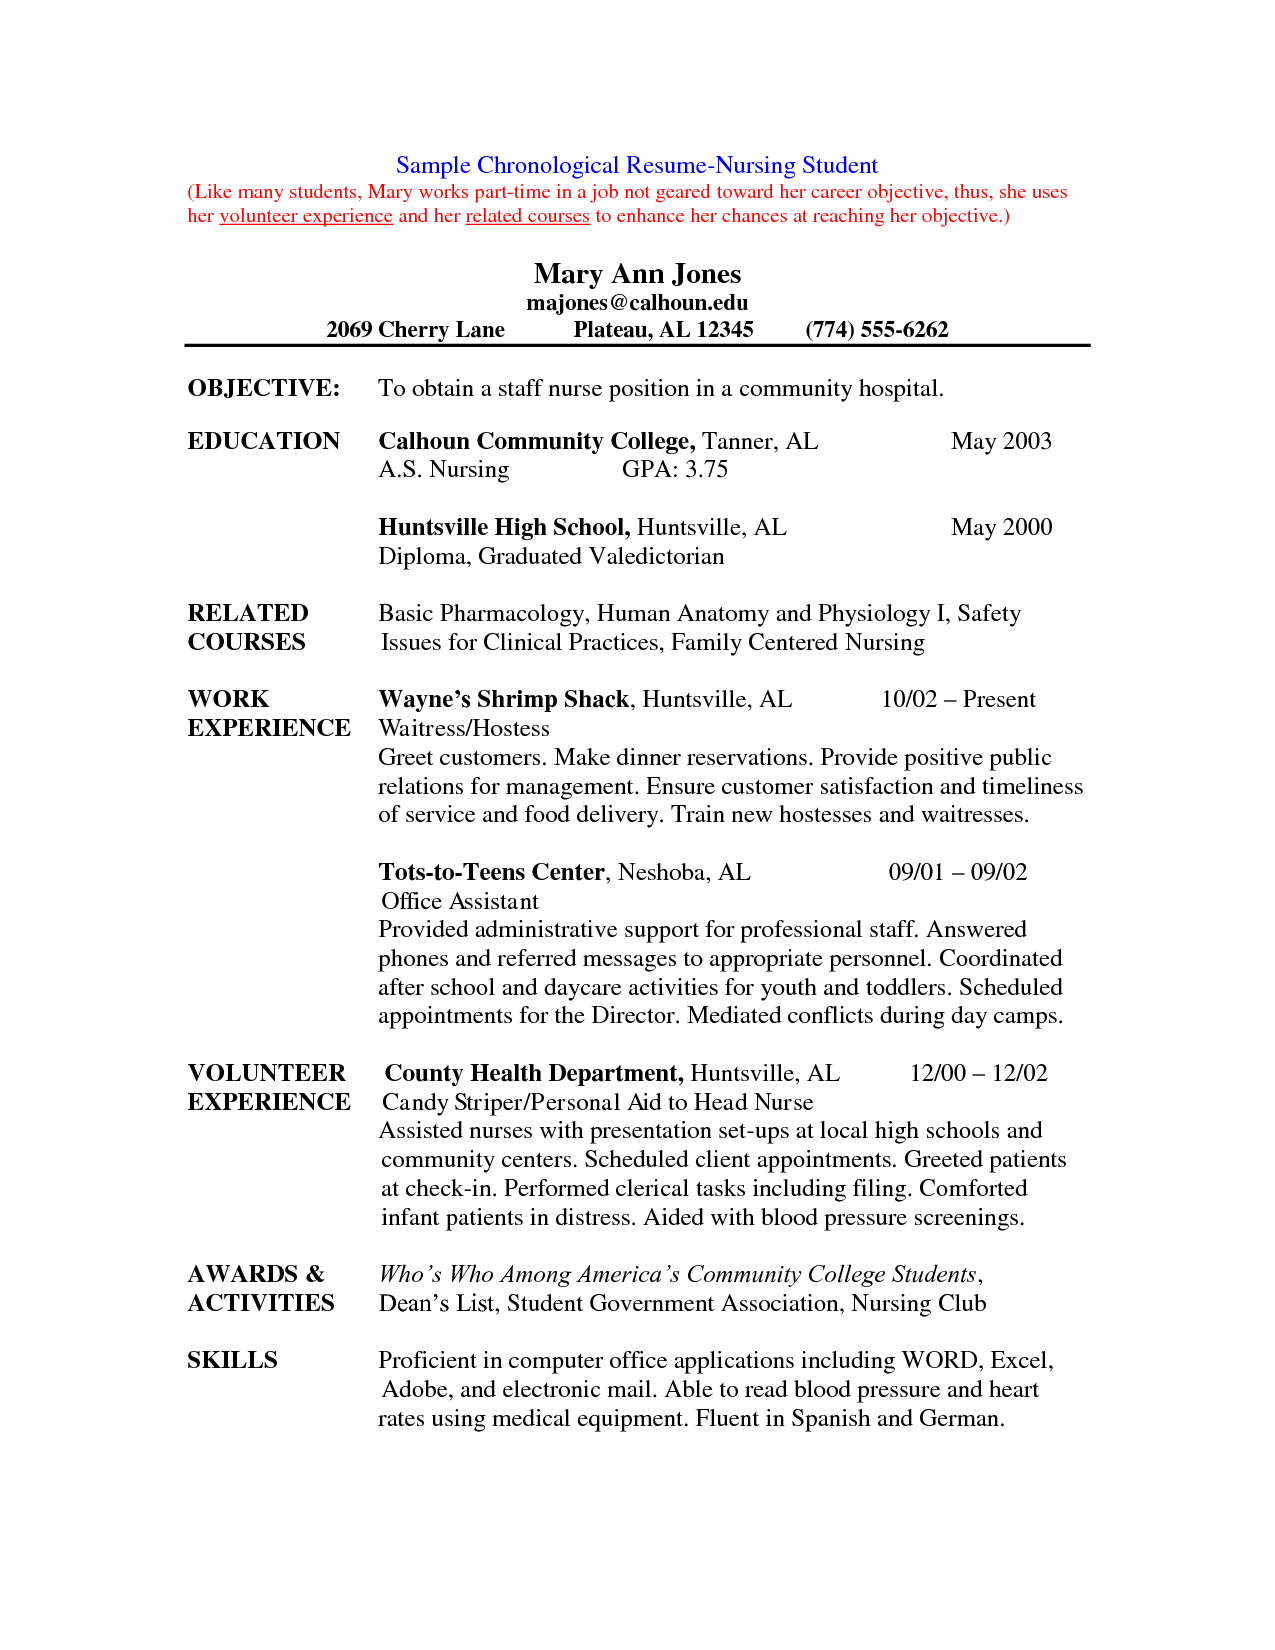 Sample Of Rn Resume Graduate Nurse Resume Template. Resume For New Nurse  Grad New Grad .  Resume For Nursing Job